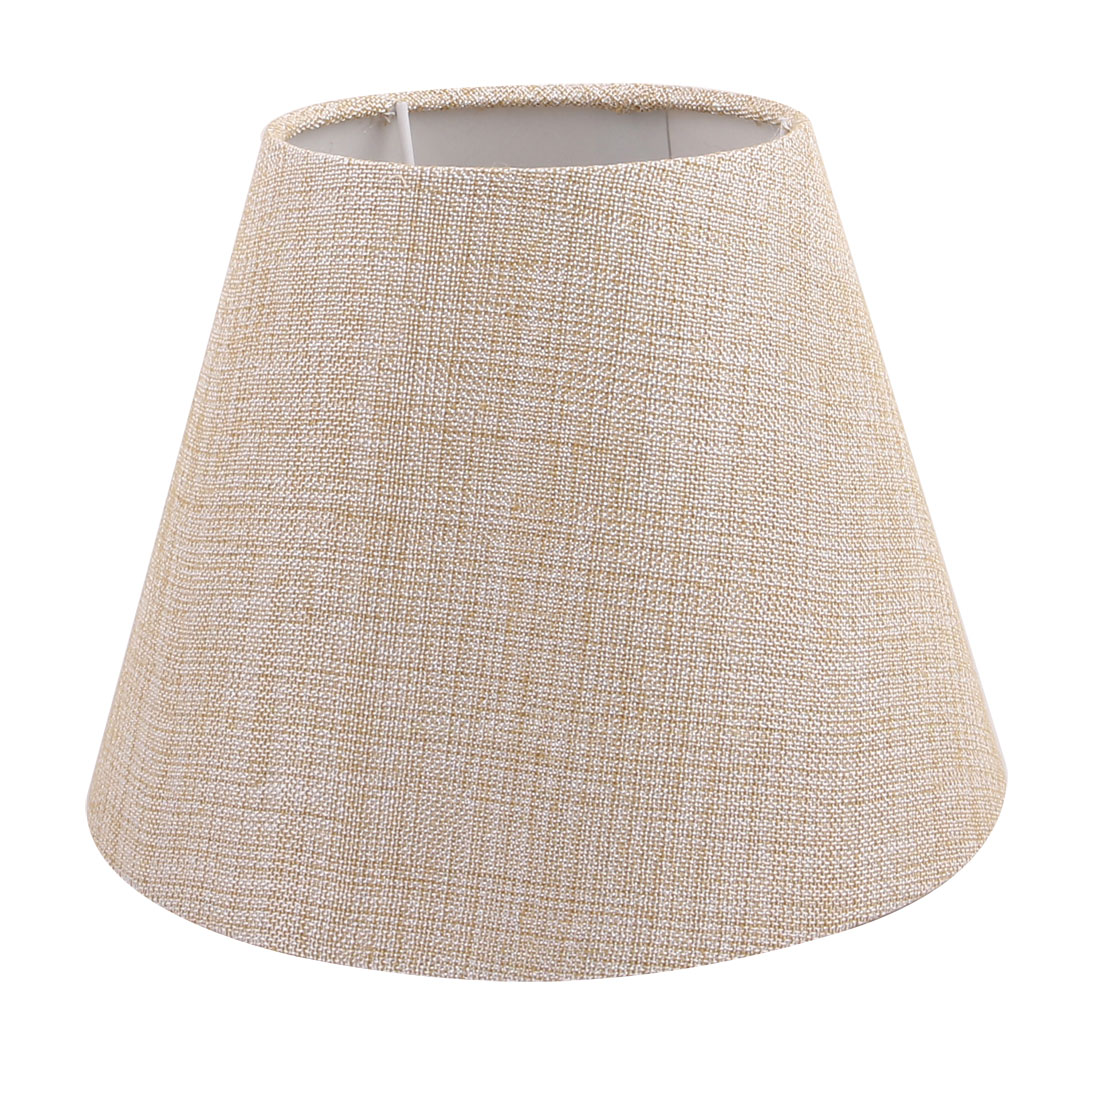 130mmx230mmx170mm Shell Lamp Cover for Home Office Reading Lamp